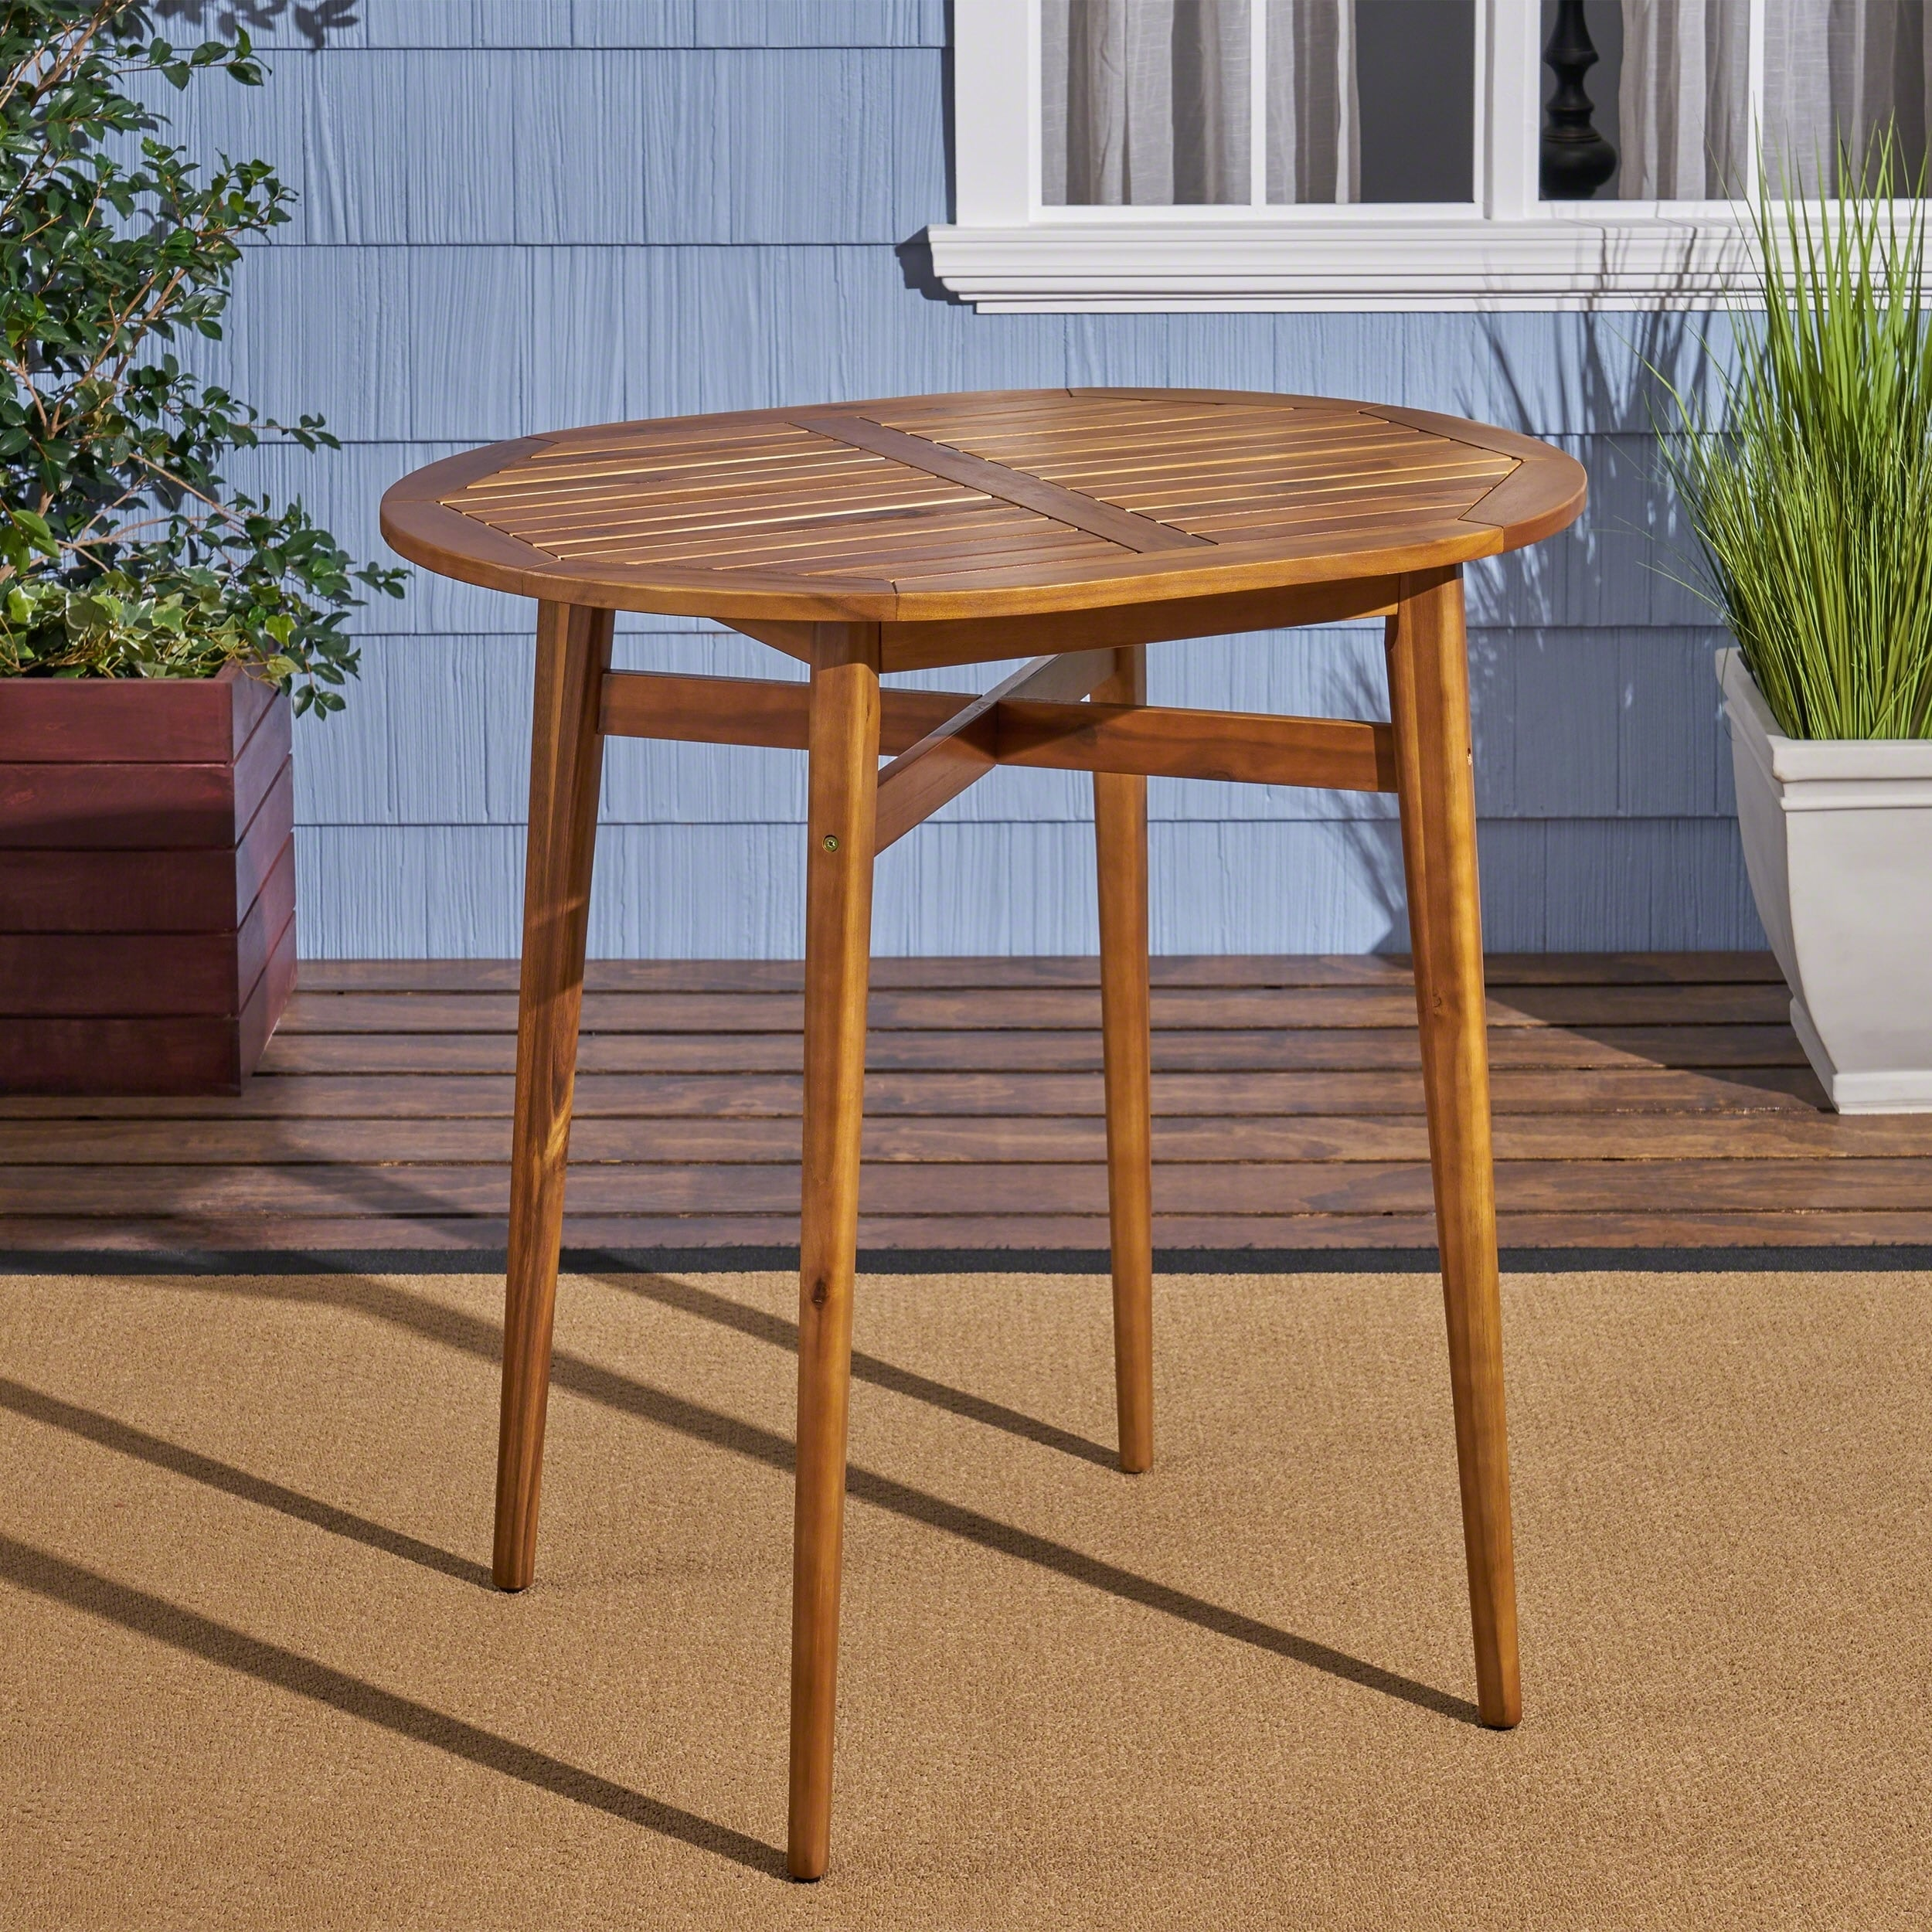 Stamford Bar-Height Patio Table Solid Acacia Wood 39  Counter-Height by Christopher Knight Home & Shop Stamford Bar-Height Patio Table Solid Acacia Wood 39